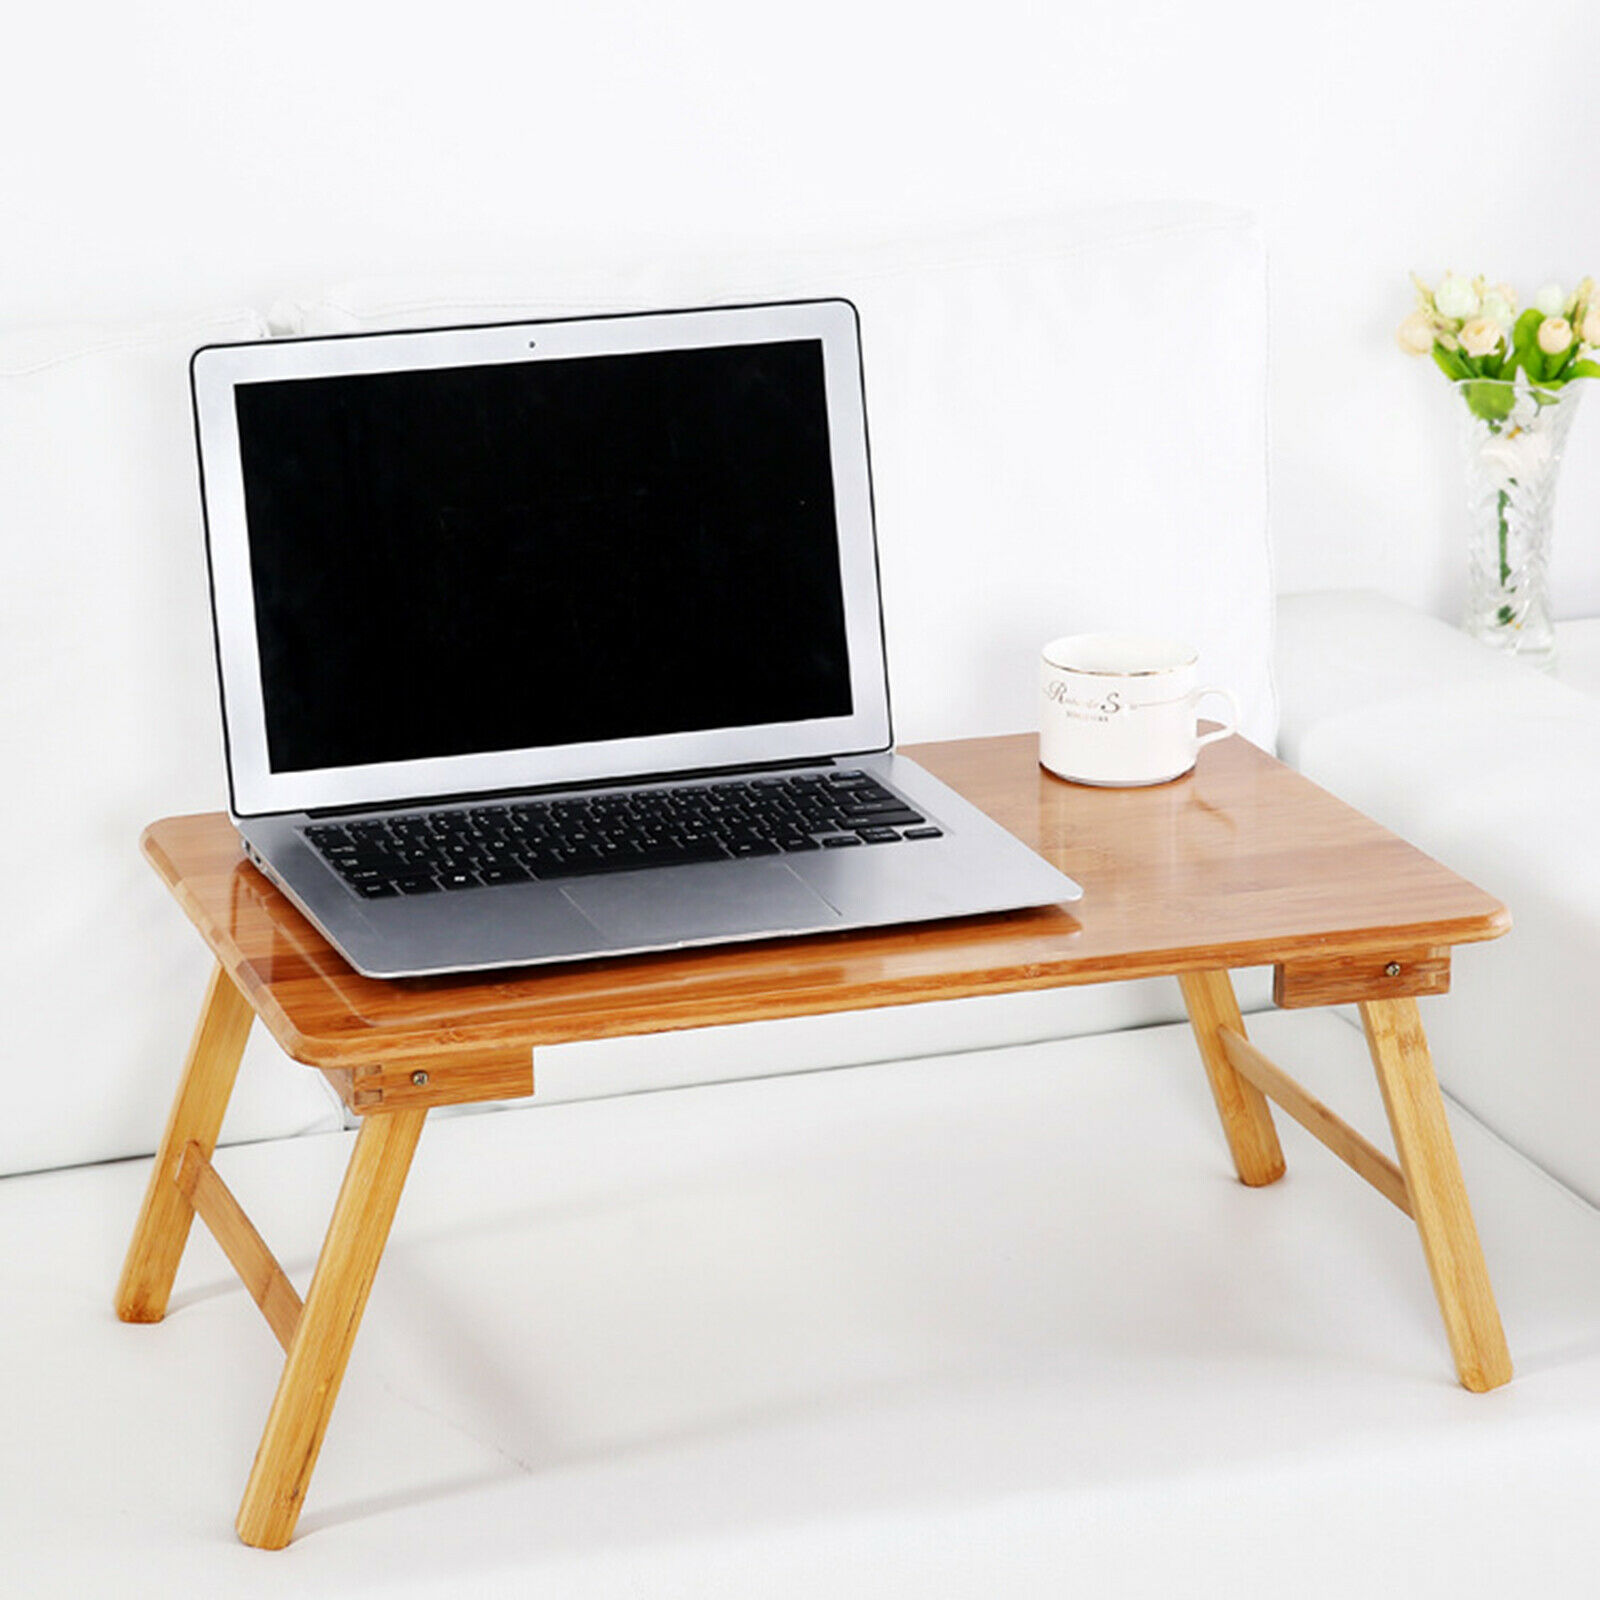 Bamboo Folding Laptop Foldable Legs Lap Desk / Bed Tray Fit For 17 In Laptop